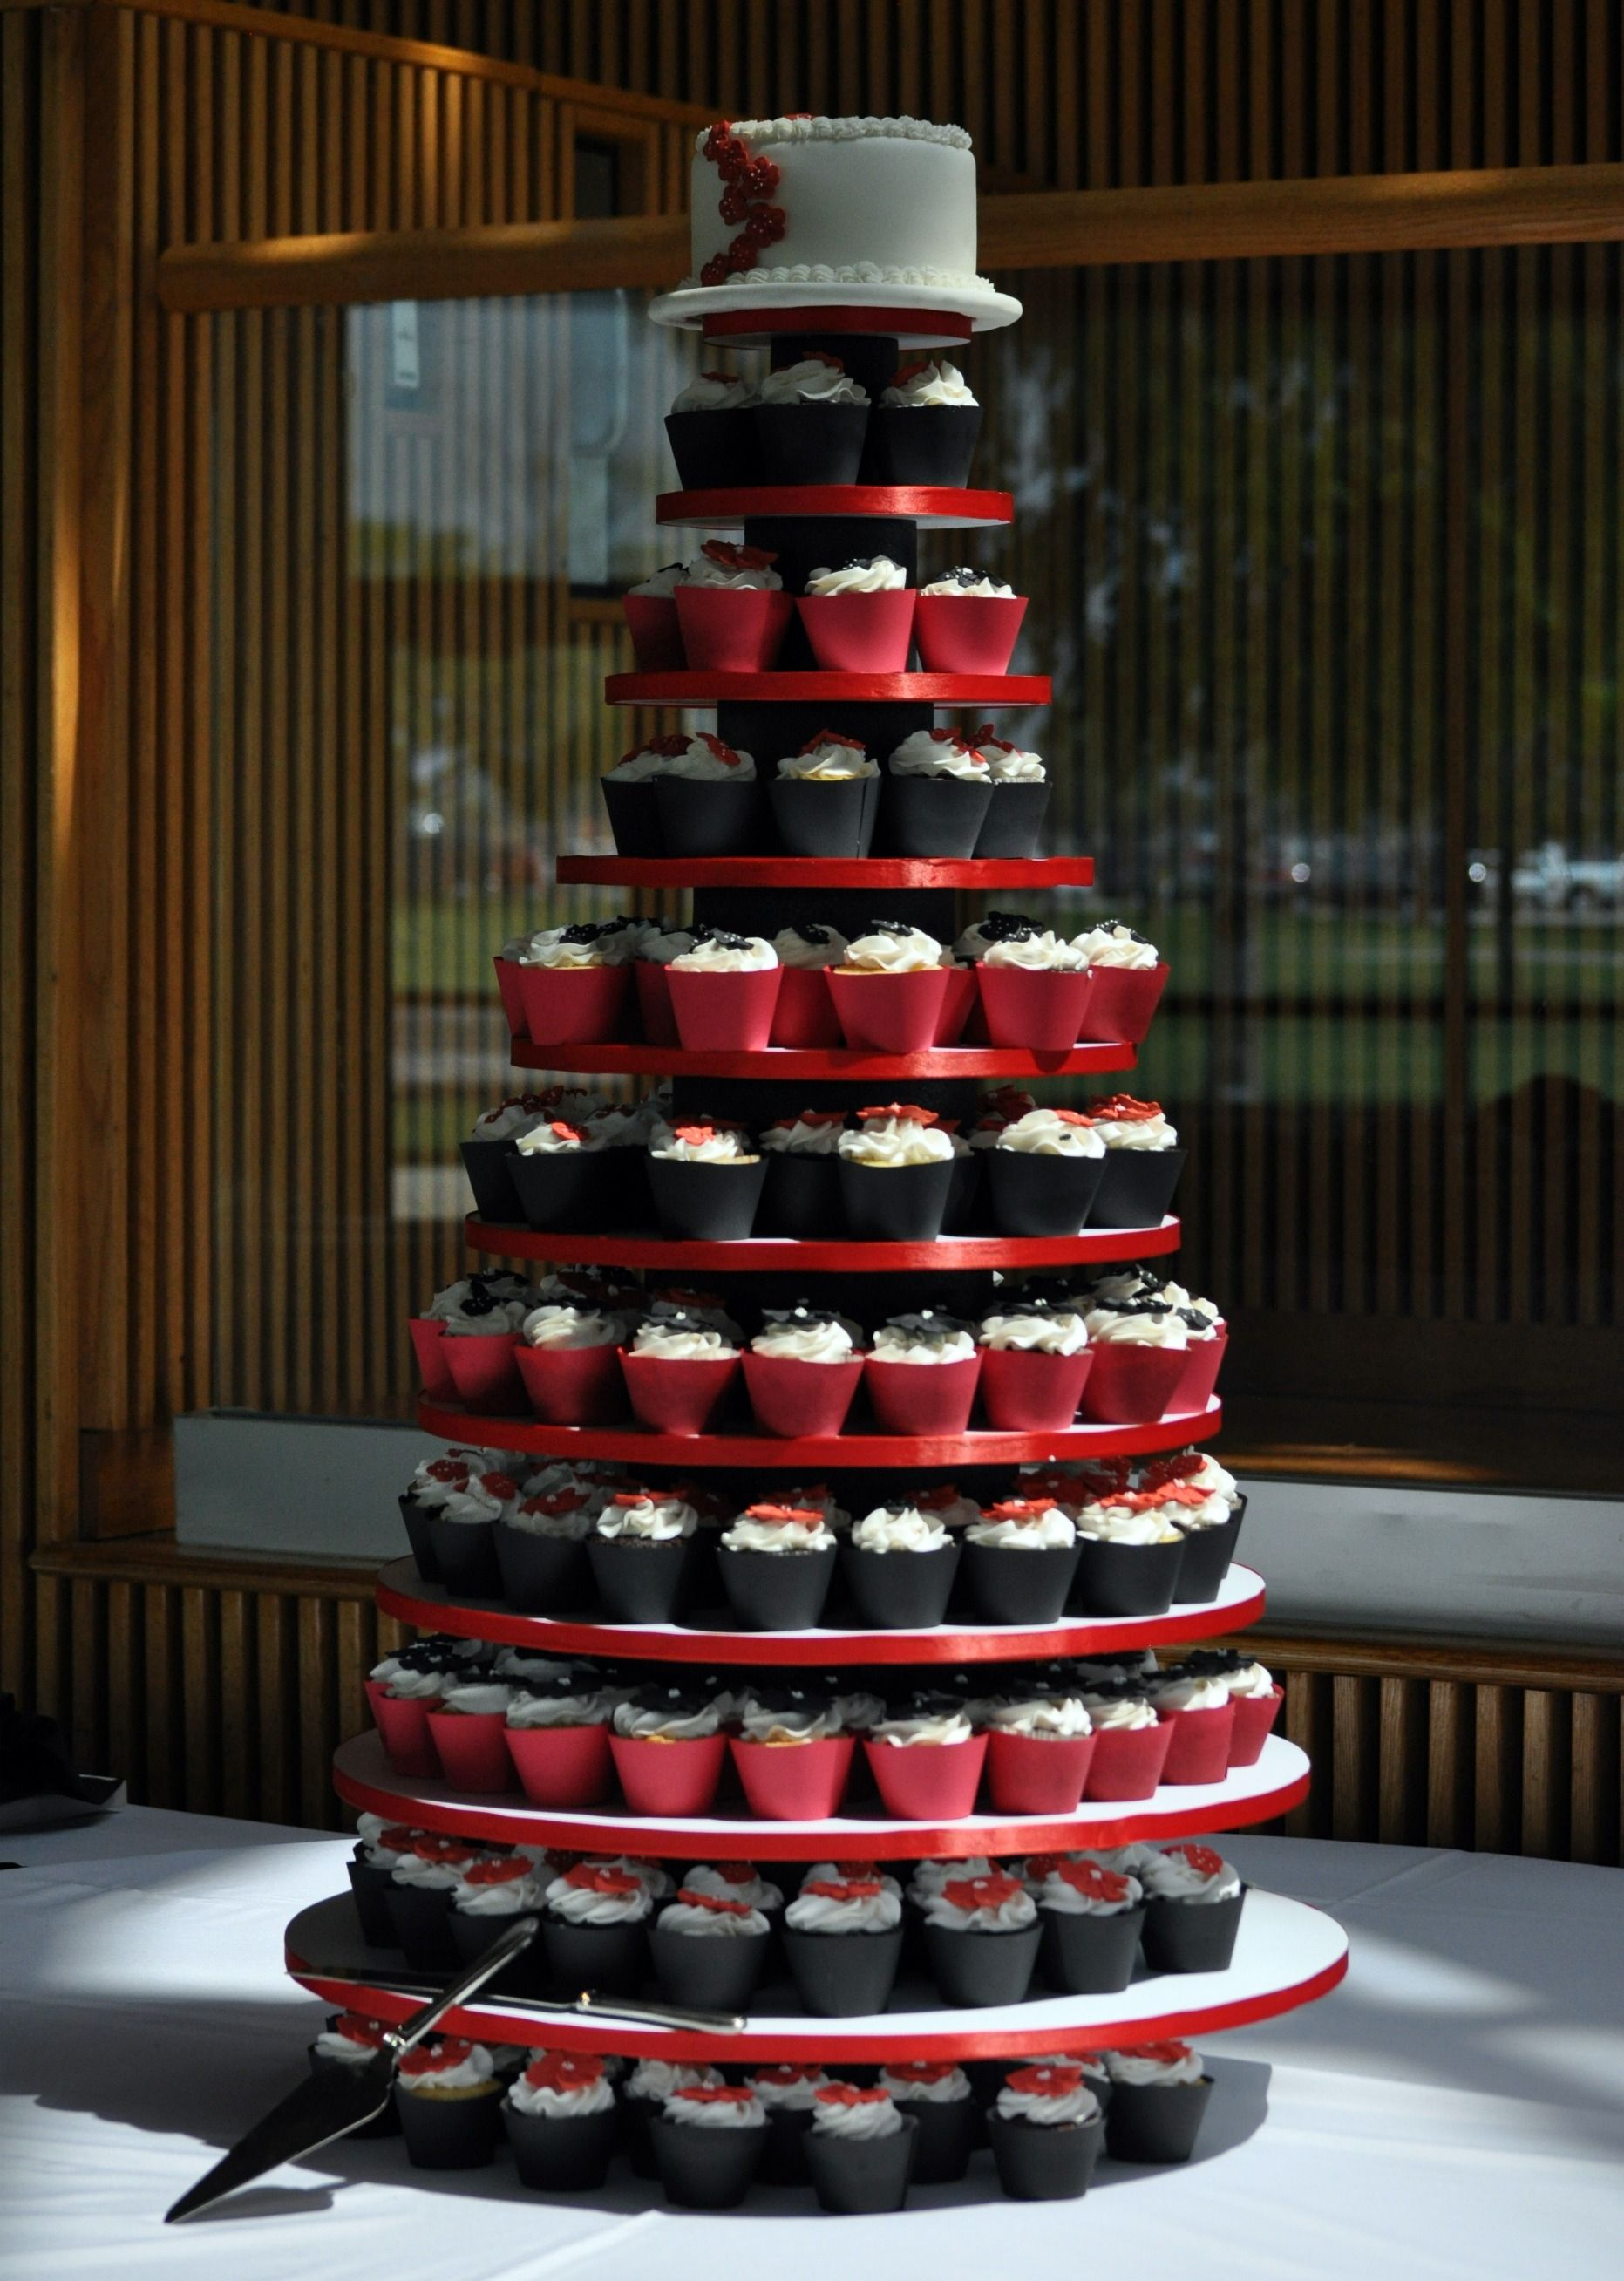 Another idea for a wedding cake that would be easier and less messy ...